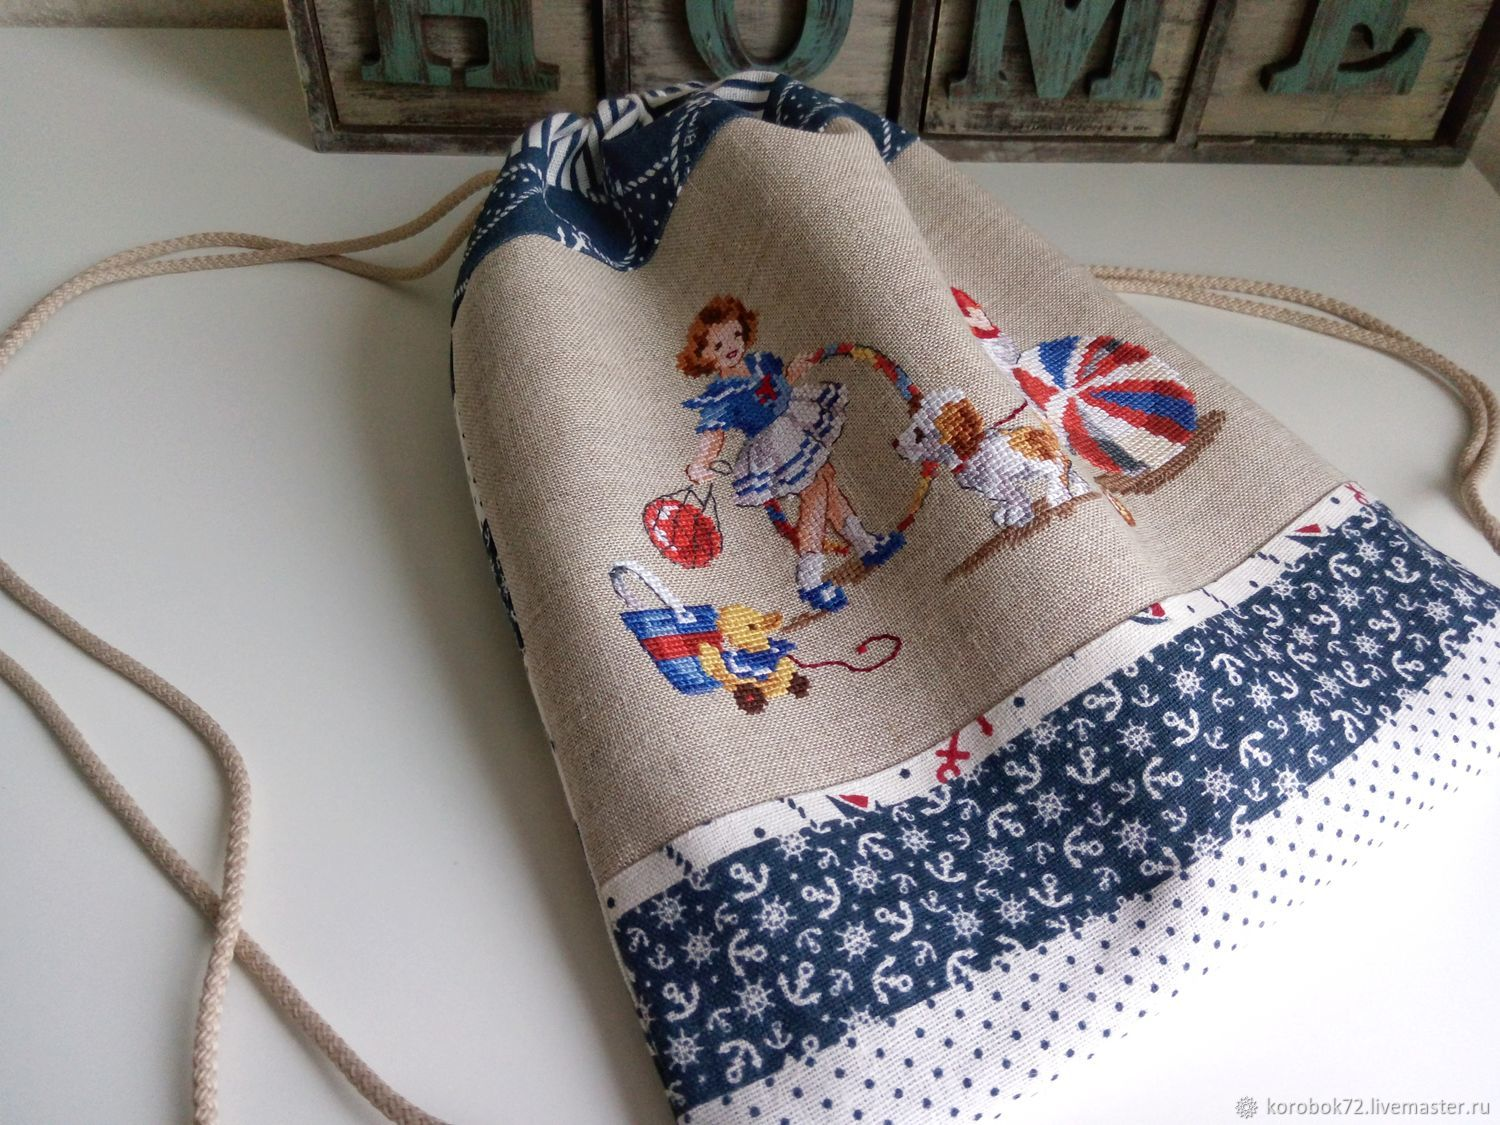 Backpack bag for children hand embroidery cross stitch, Backpacks, St. Petersburg,  Фото №1